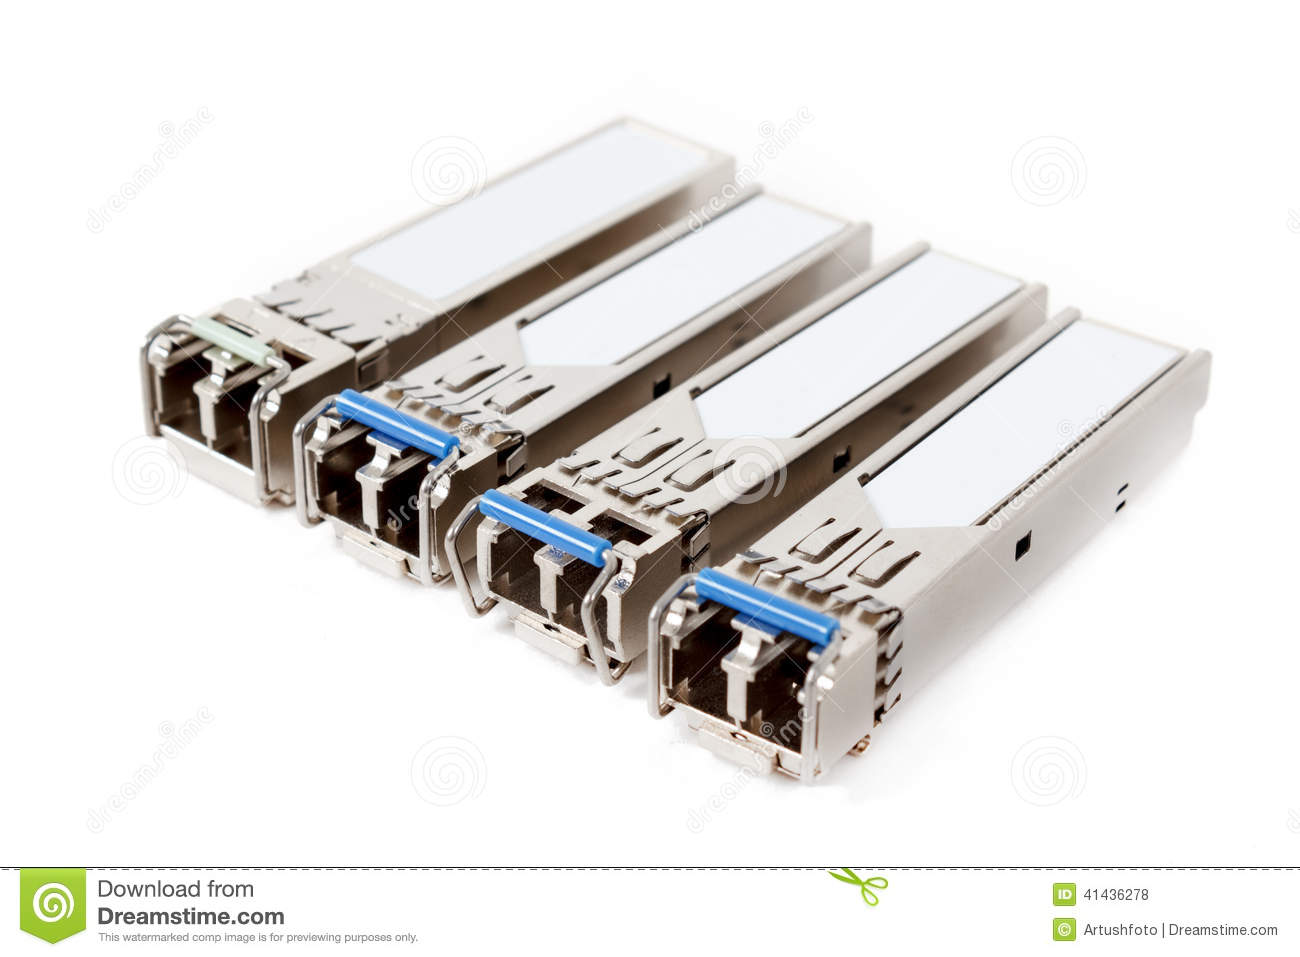 Optical Gigabit Sfp Modules For Network Switch On The